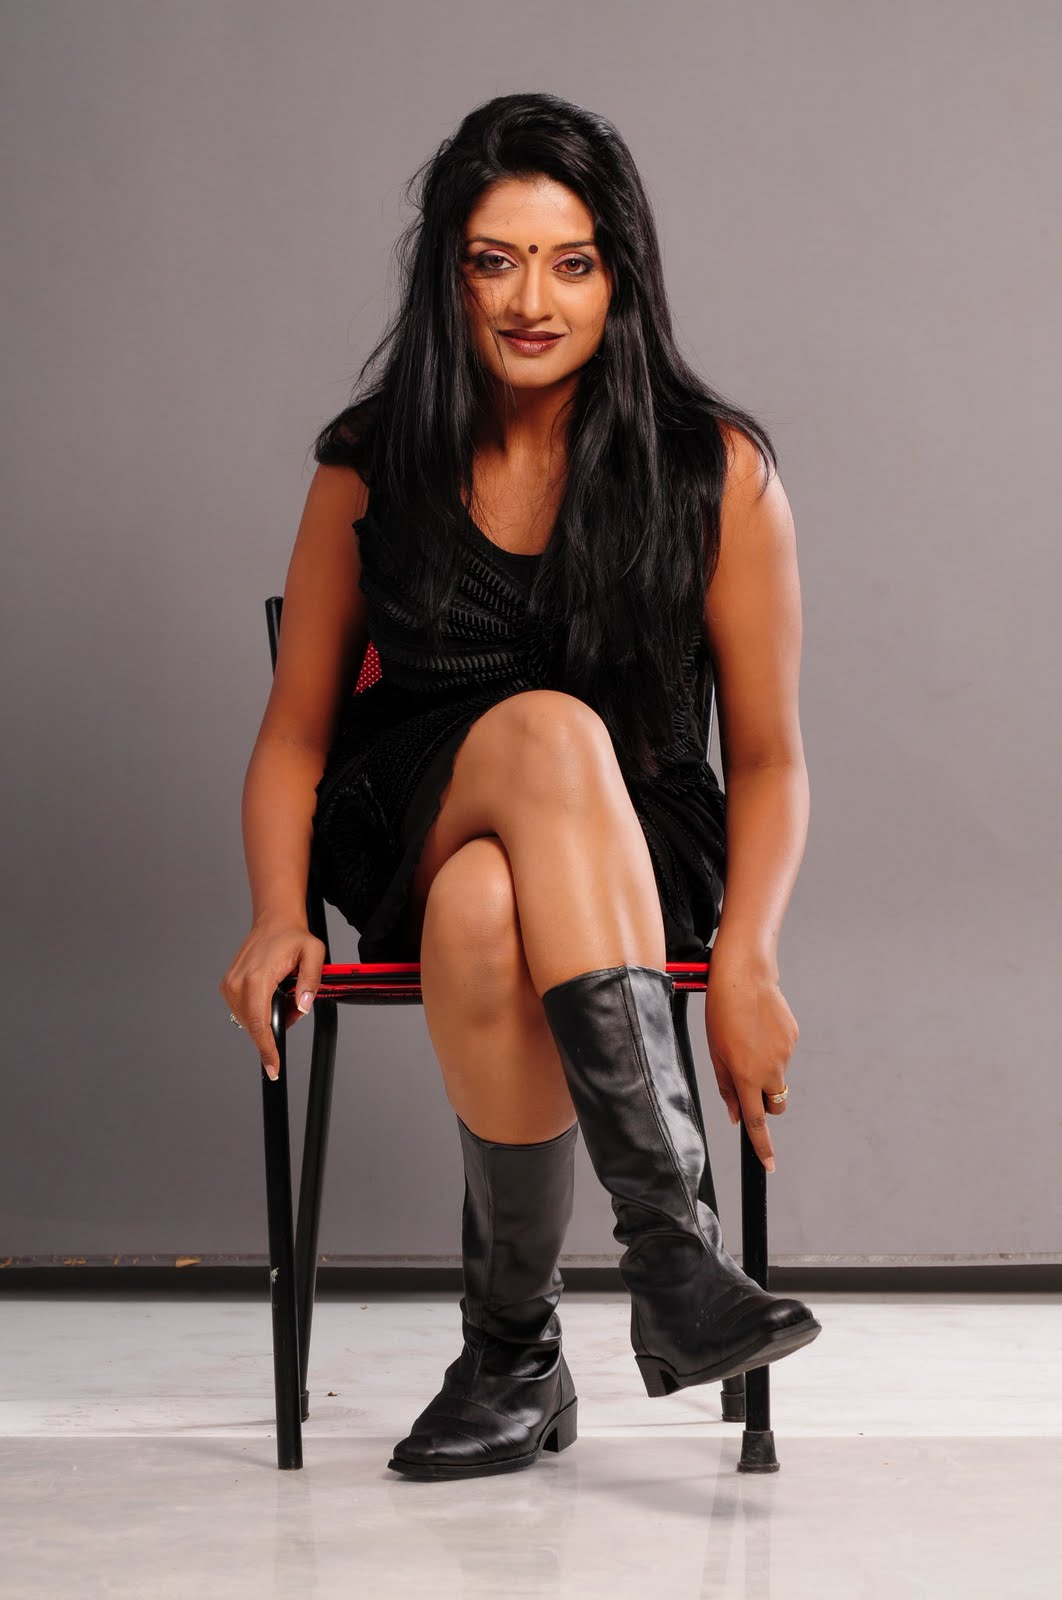 Vimala Raman in sitting in chair with crossed legs and High Black Boots